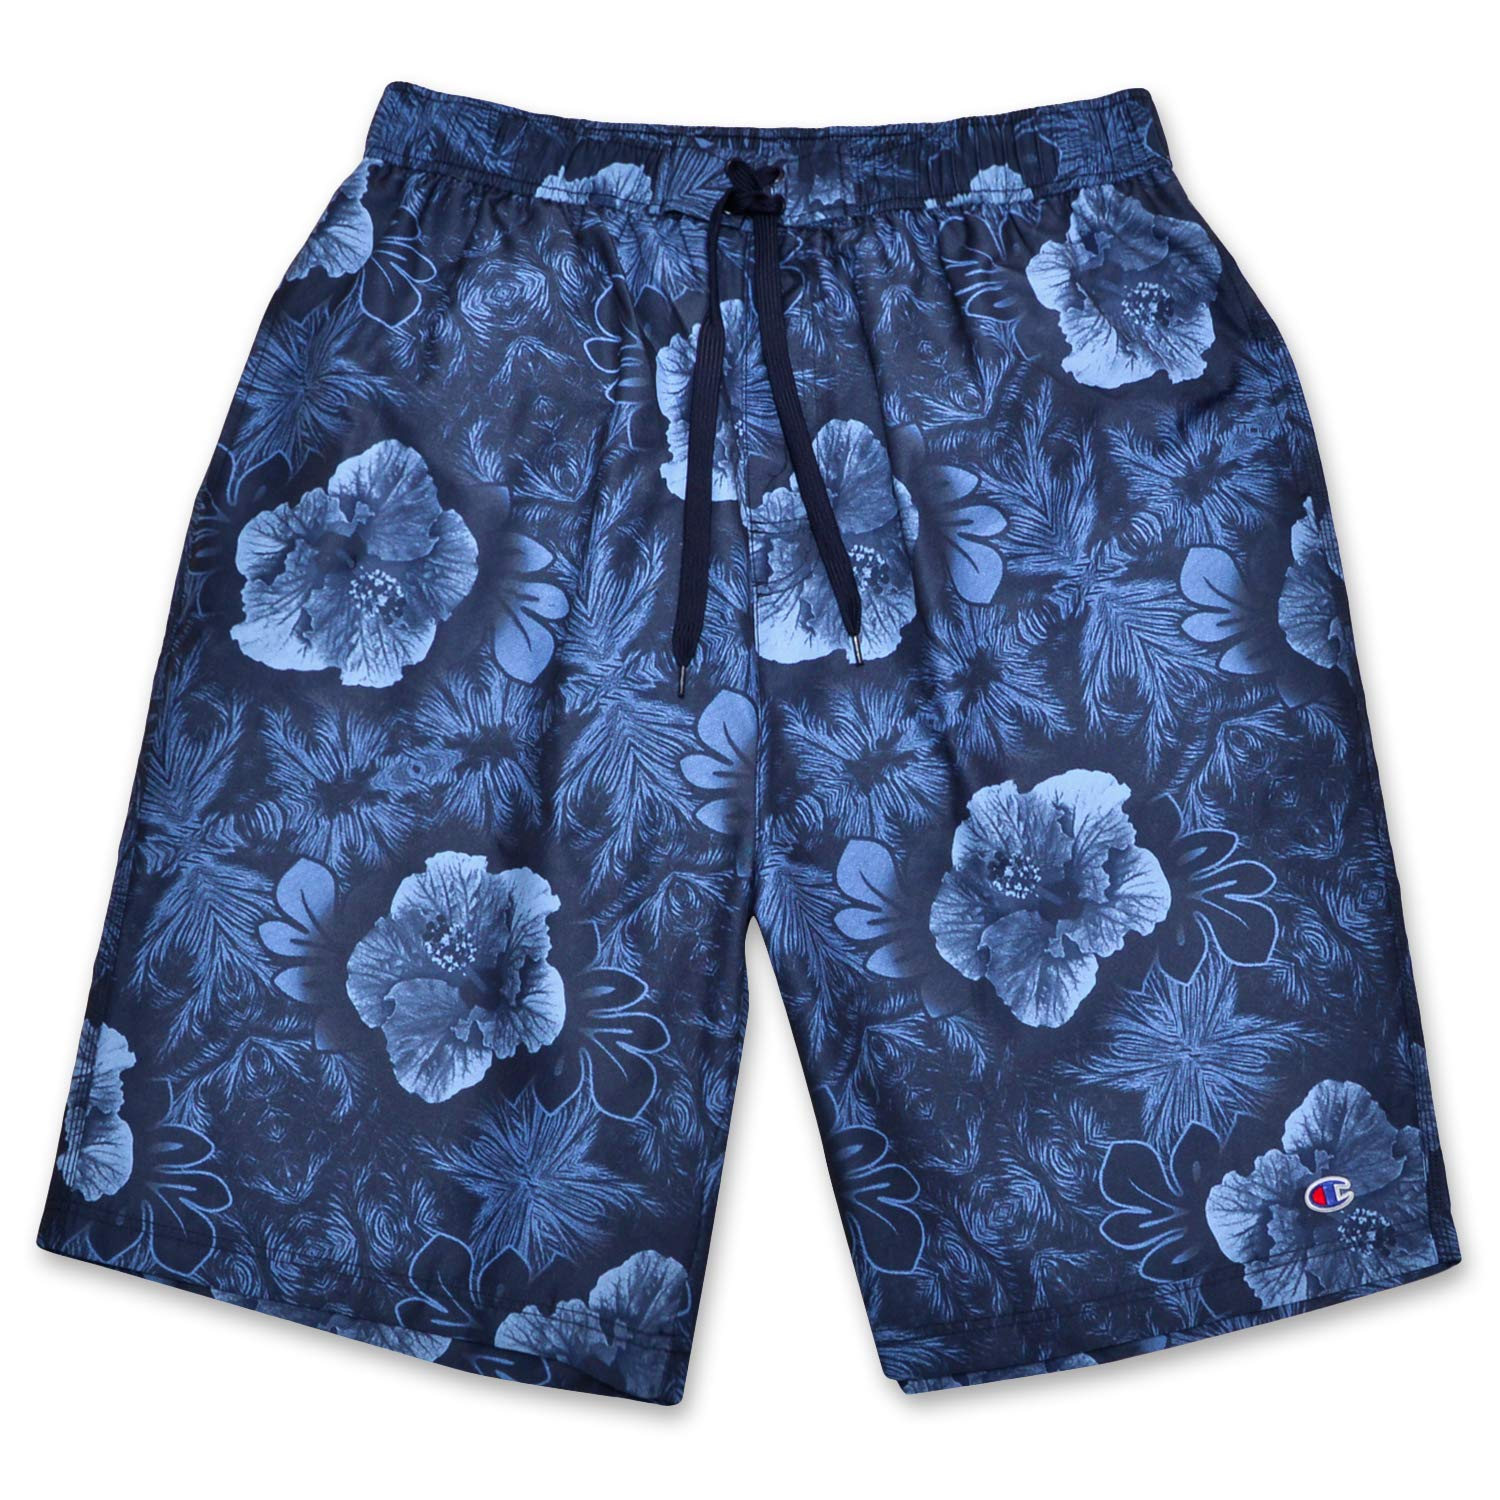 Champion Mens Big and Tall Floral Print Swim Trunks with Quick Dry Technology Navy by Champion